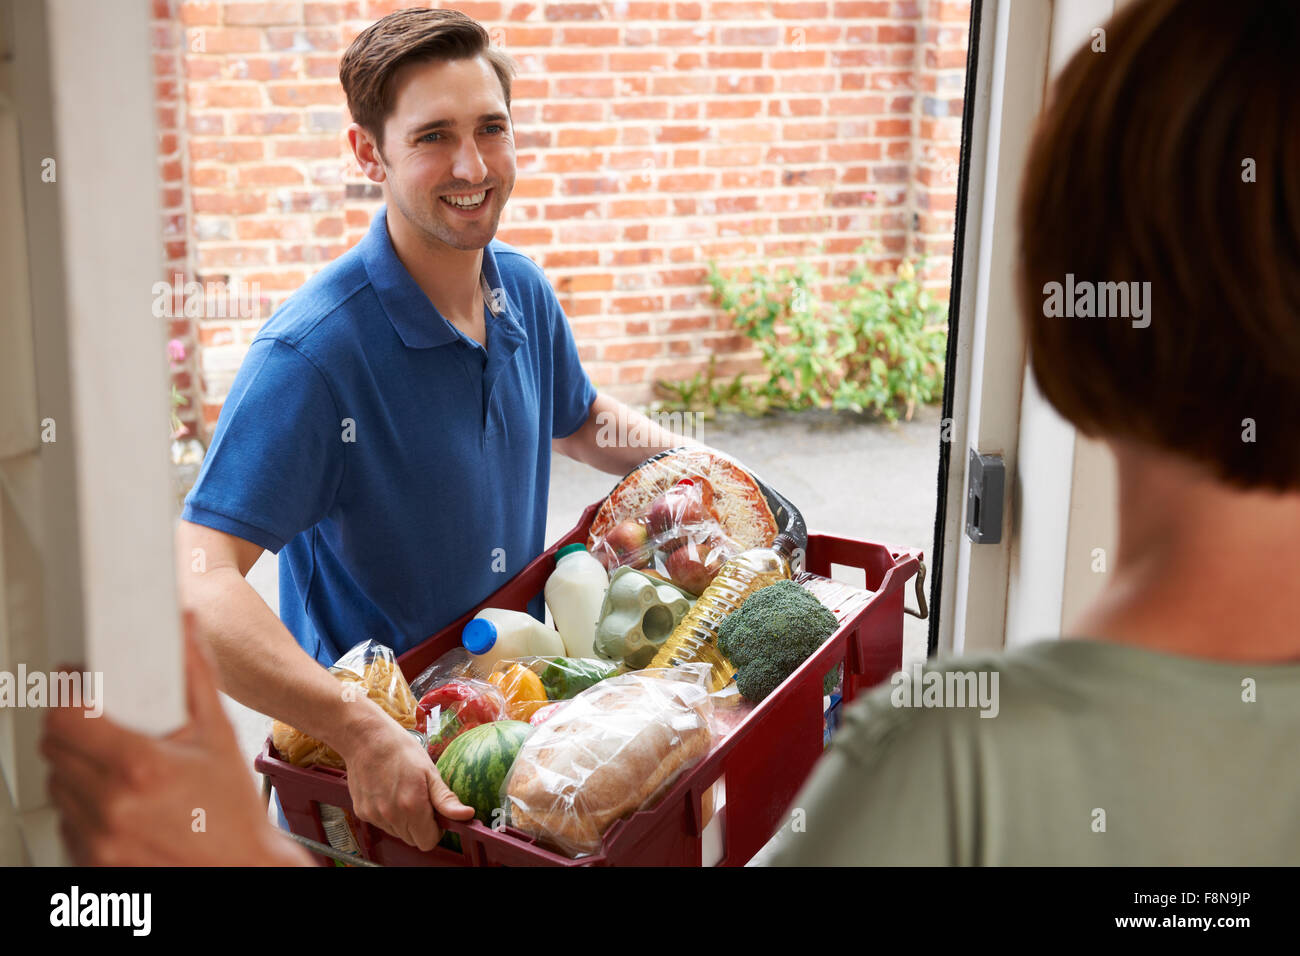 Fast Food Delivery Driver Liverpool